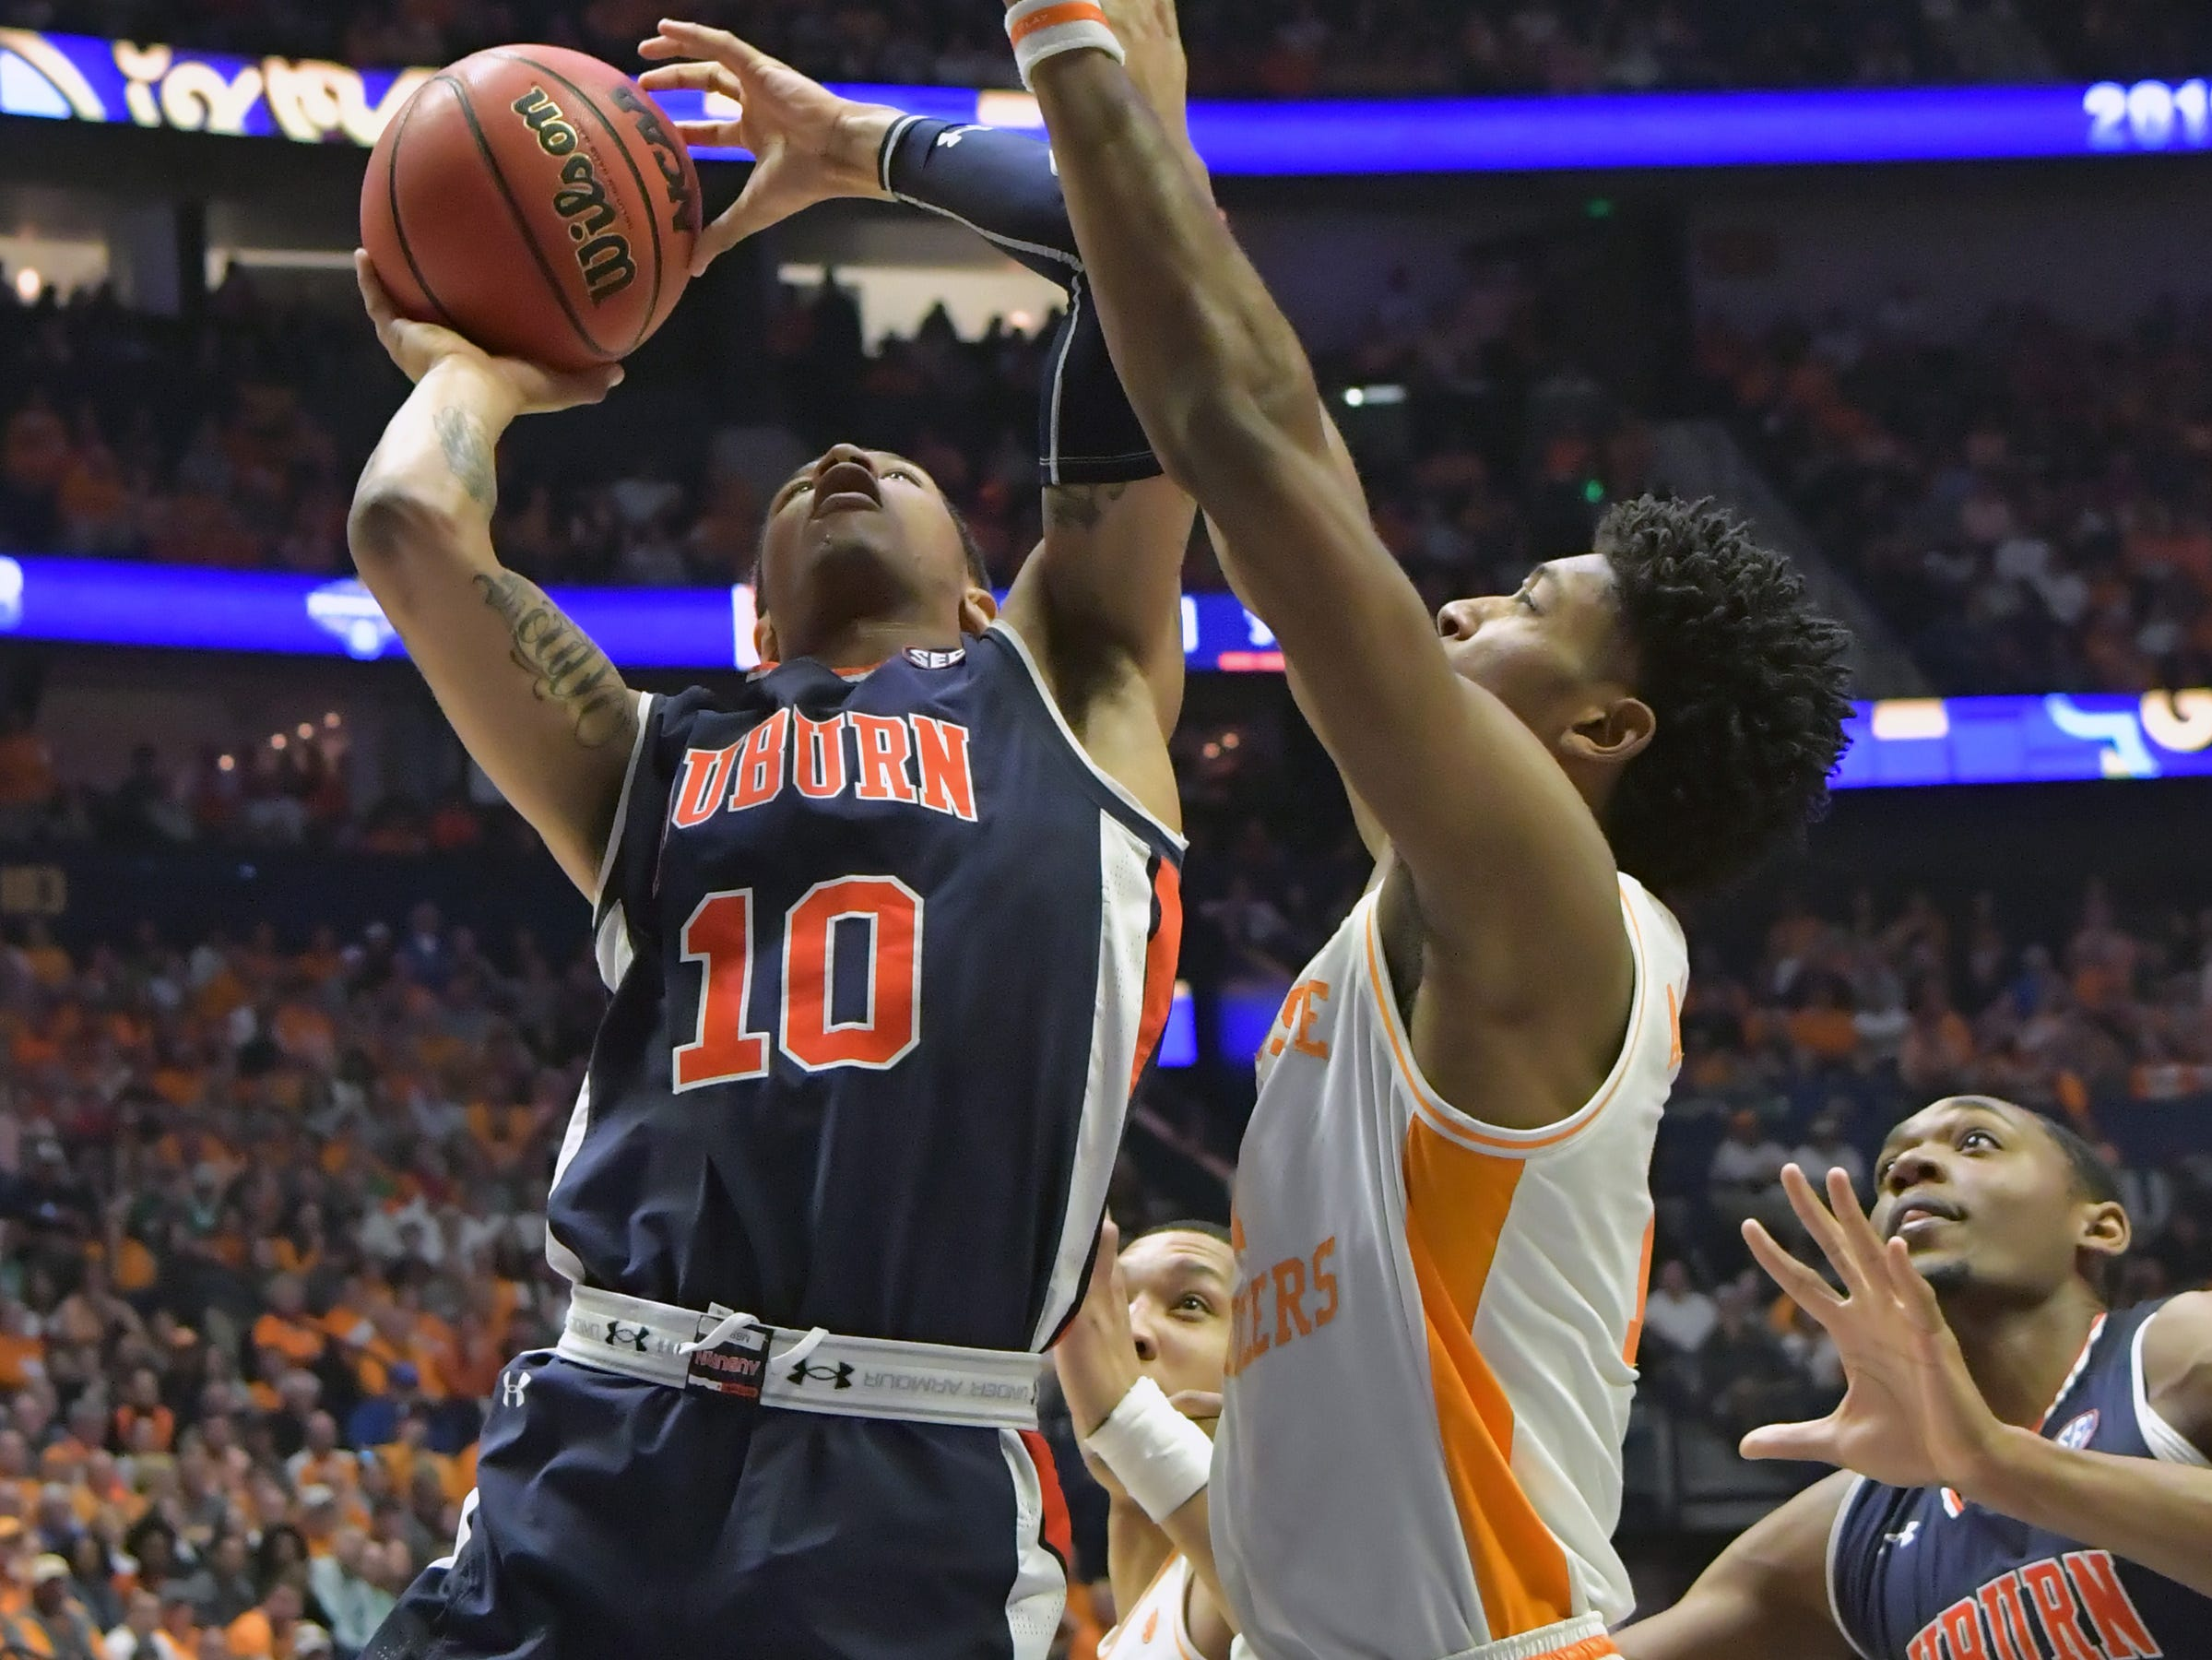 Mar 17, 2019; Nashville, TN, USA; Auburn Tigers guard Samir Doughty (10) shoots against Tennessee Volunteers during the first half of the championship game in the SEC conference tournament at Bridgestone Arena. Mandatory Credit: Jim Brown-USA TODAY Sports